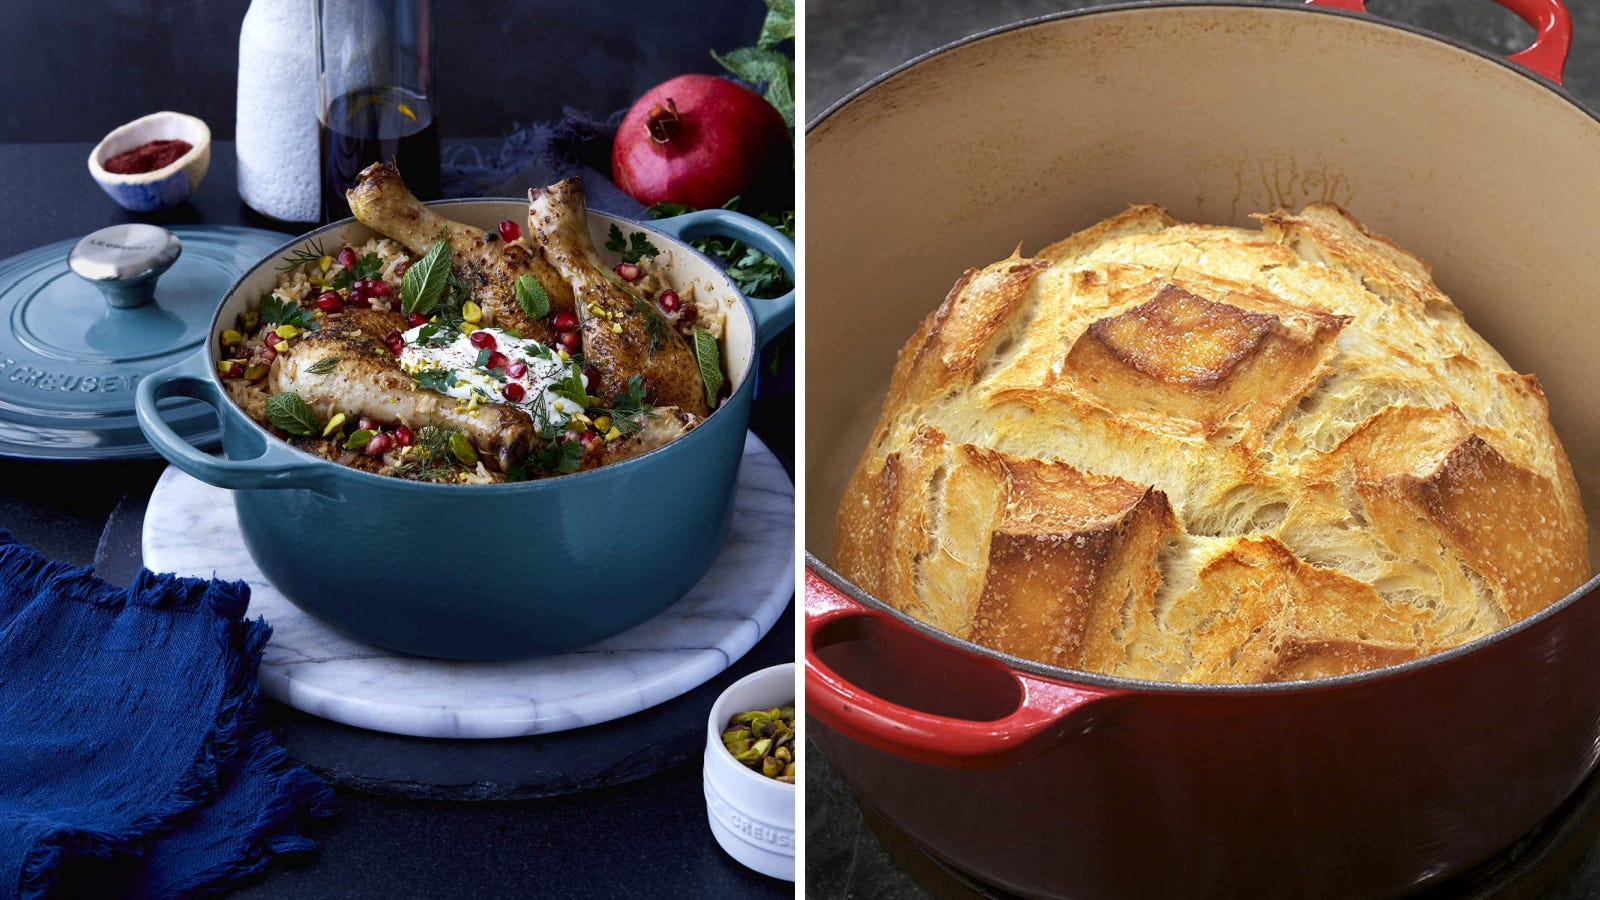 Two images featuring the Le Creuset; The left image features a chicken pomegranate dinner, ready to be served and the right image demonstrates the Dutch ovens ability to create a gorgeous artisan loaf of bread.